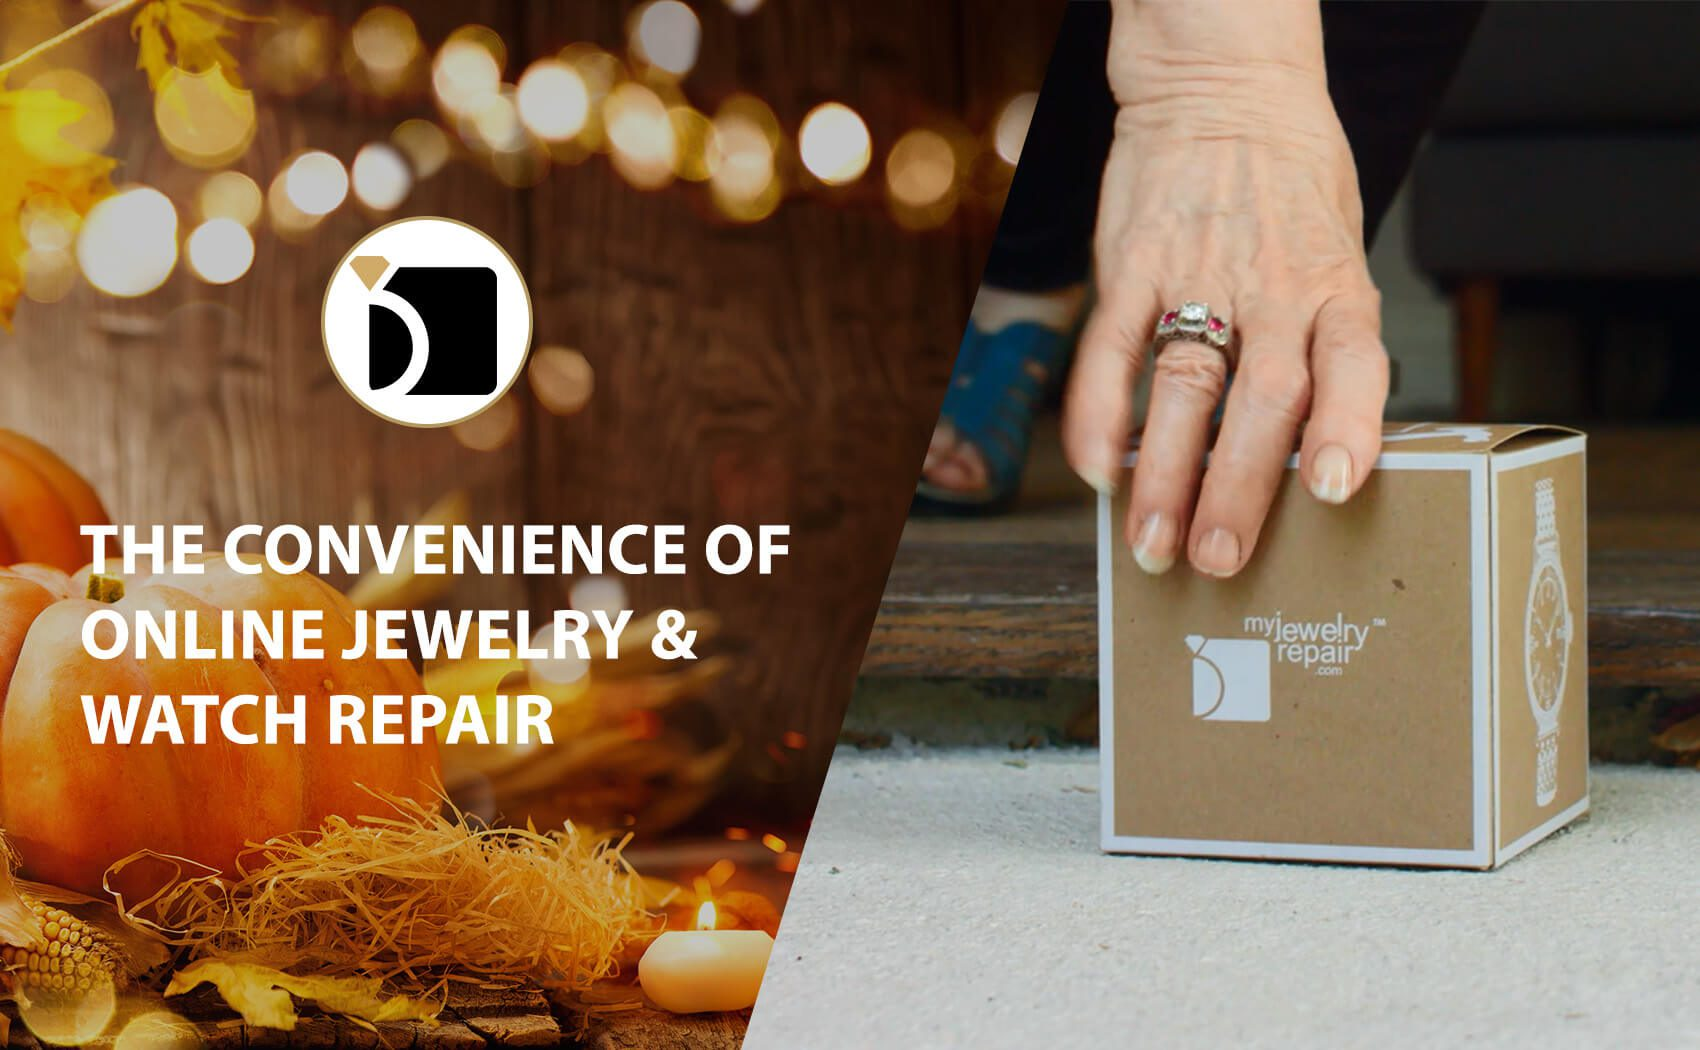 Image Showing Jewelry Repair Convenience Online